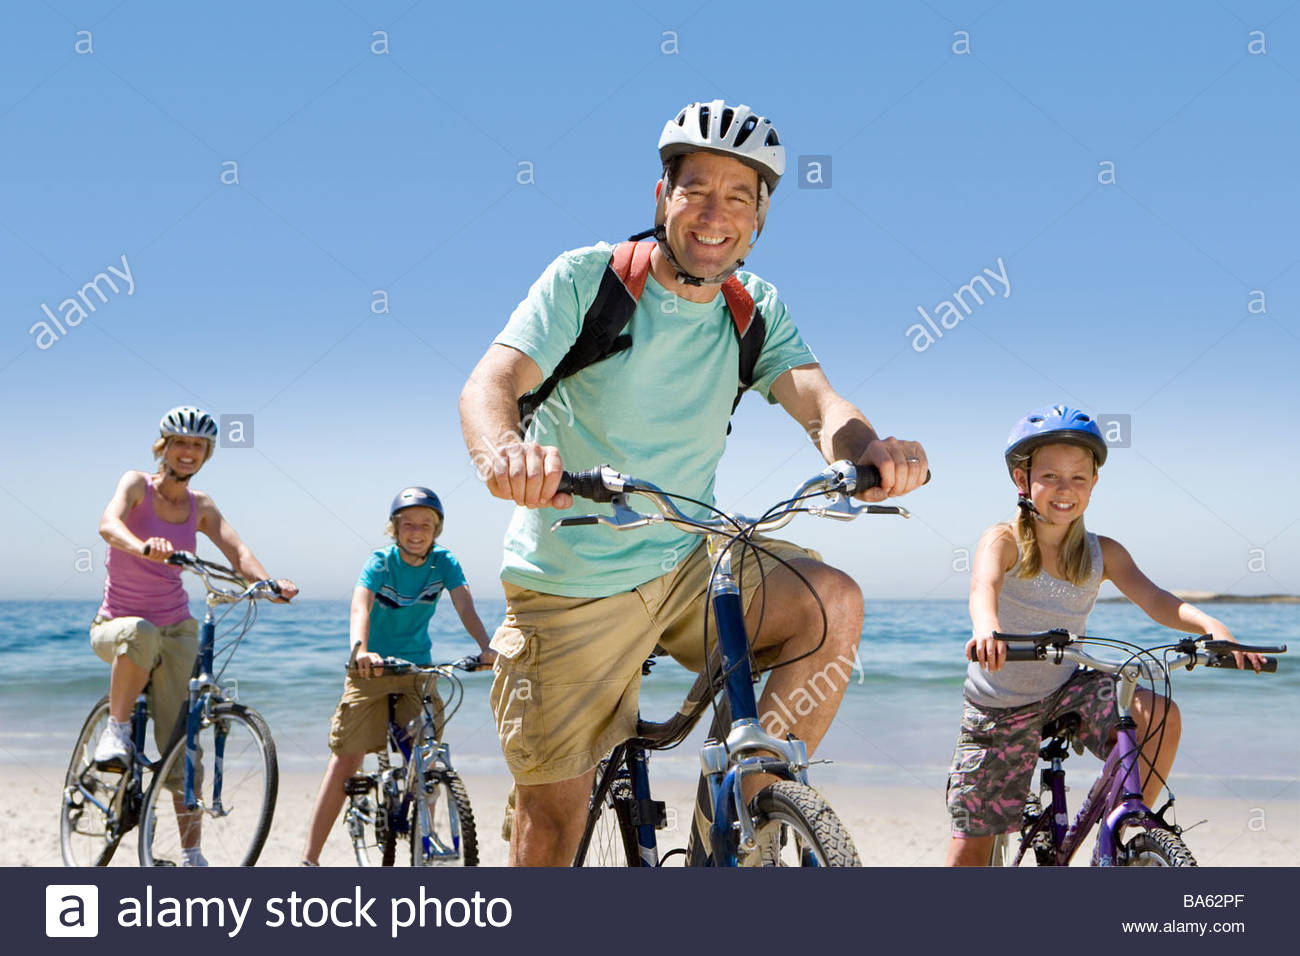 Portrait of family riding bicycles on beach Stock Photo